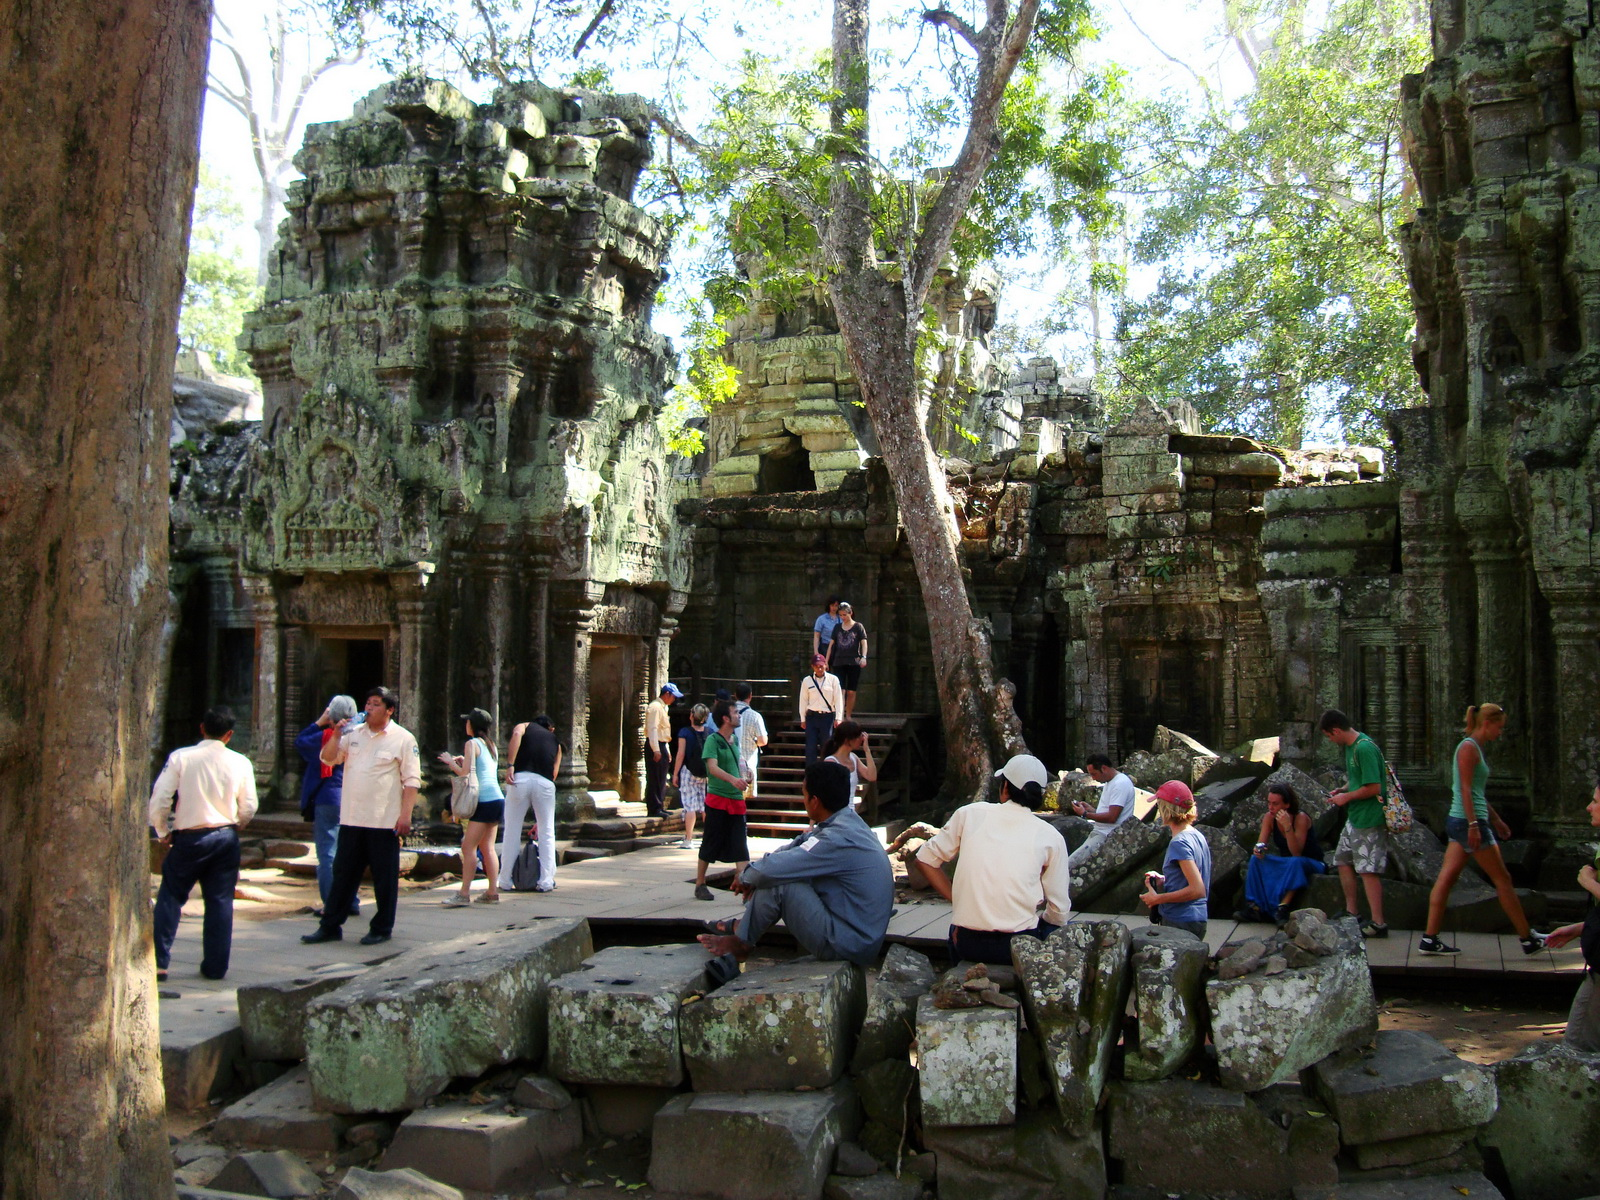 Ta Prohm Tomb Raider Bayon architecture central sanctuary area 28